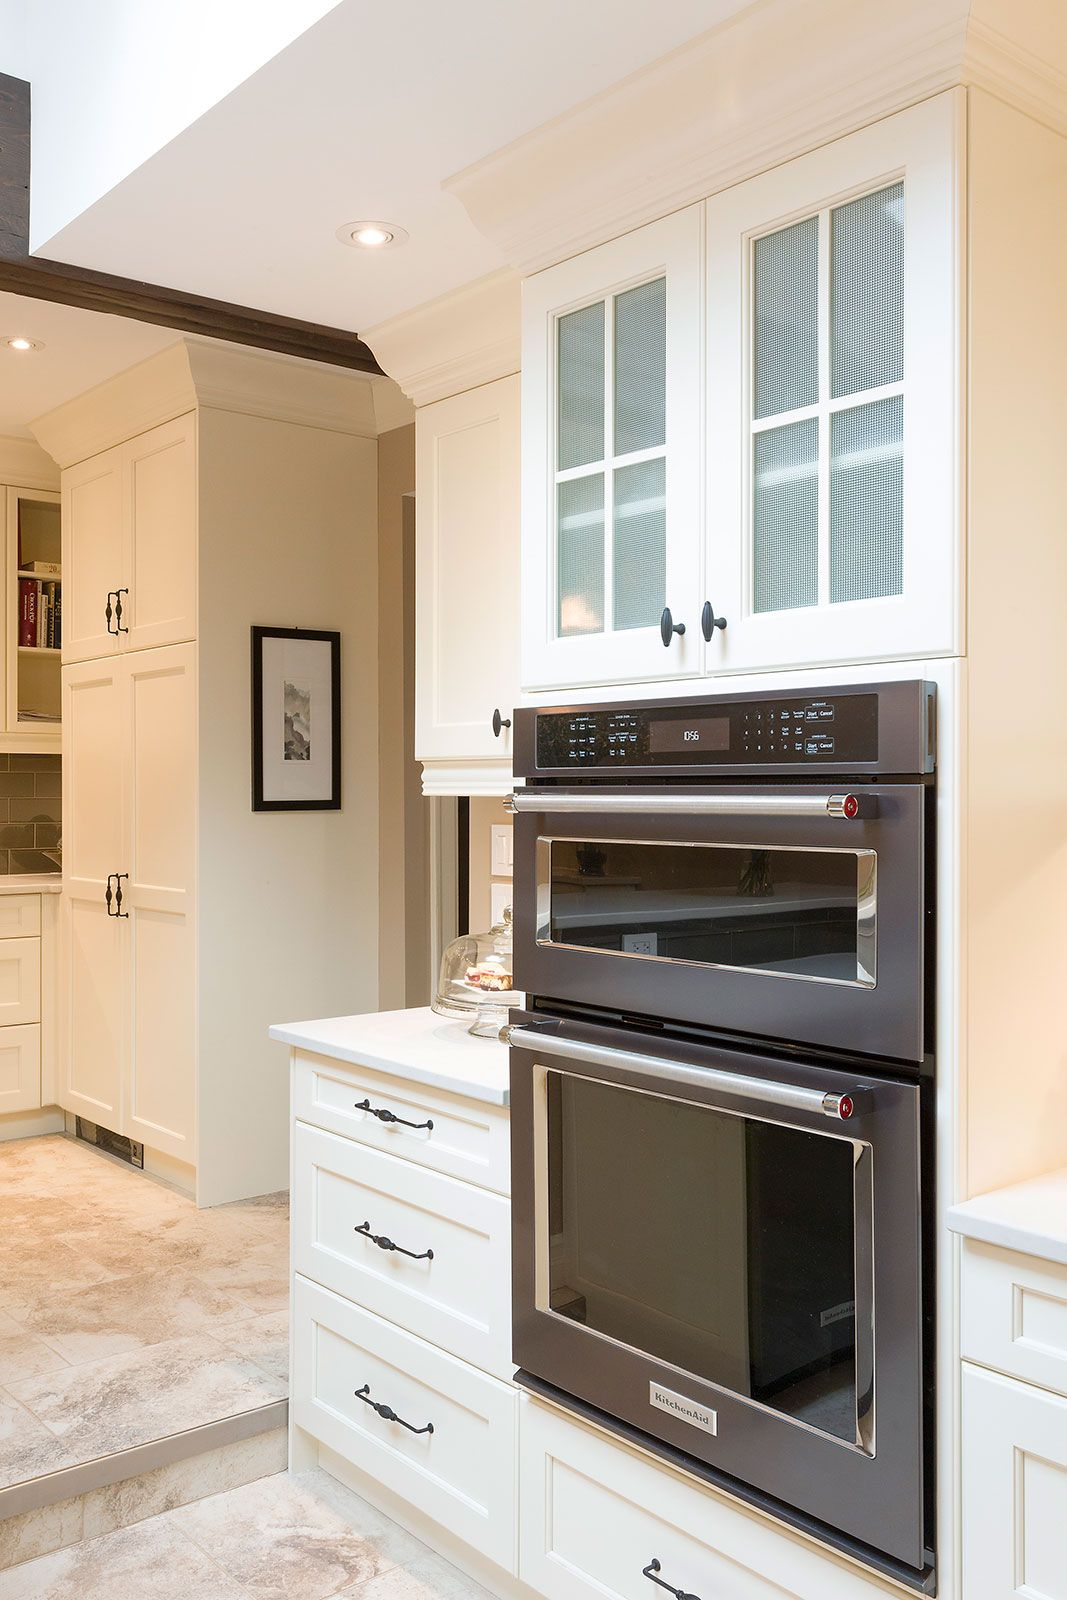 This Kitchen Situated In The Center Of The Home Was Dark And Void Of Direct Natural Sunlight Ther Kitchen Renovation Black Granite Countertops Gloss Cabinets